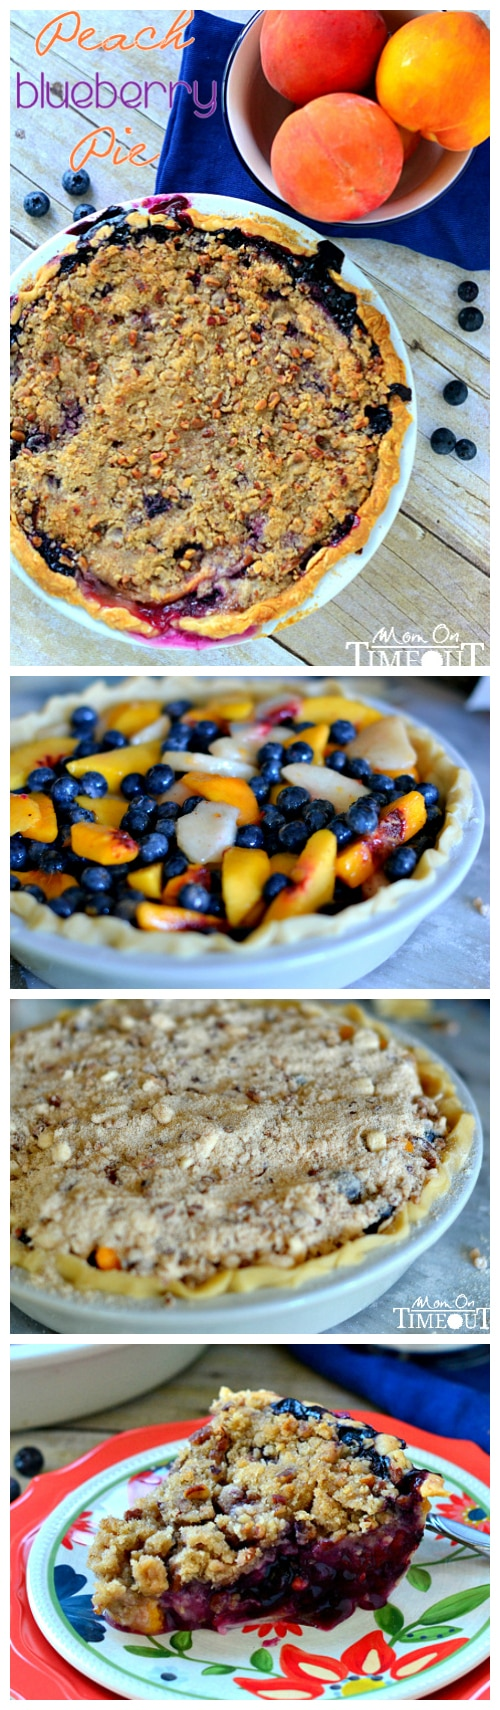 Peach Blueberry Pie with Pecan Streusel Topping from MomOnTimeout.com #pie #peach #blueberry #dessert #shop